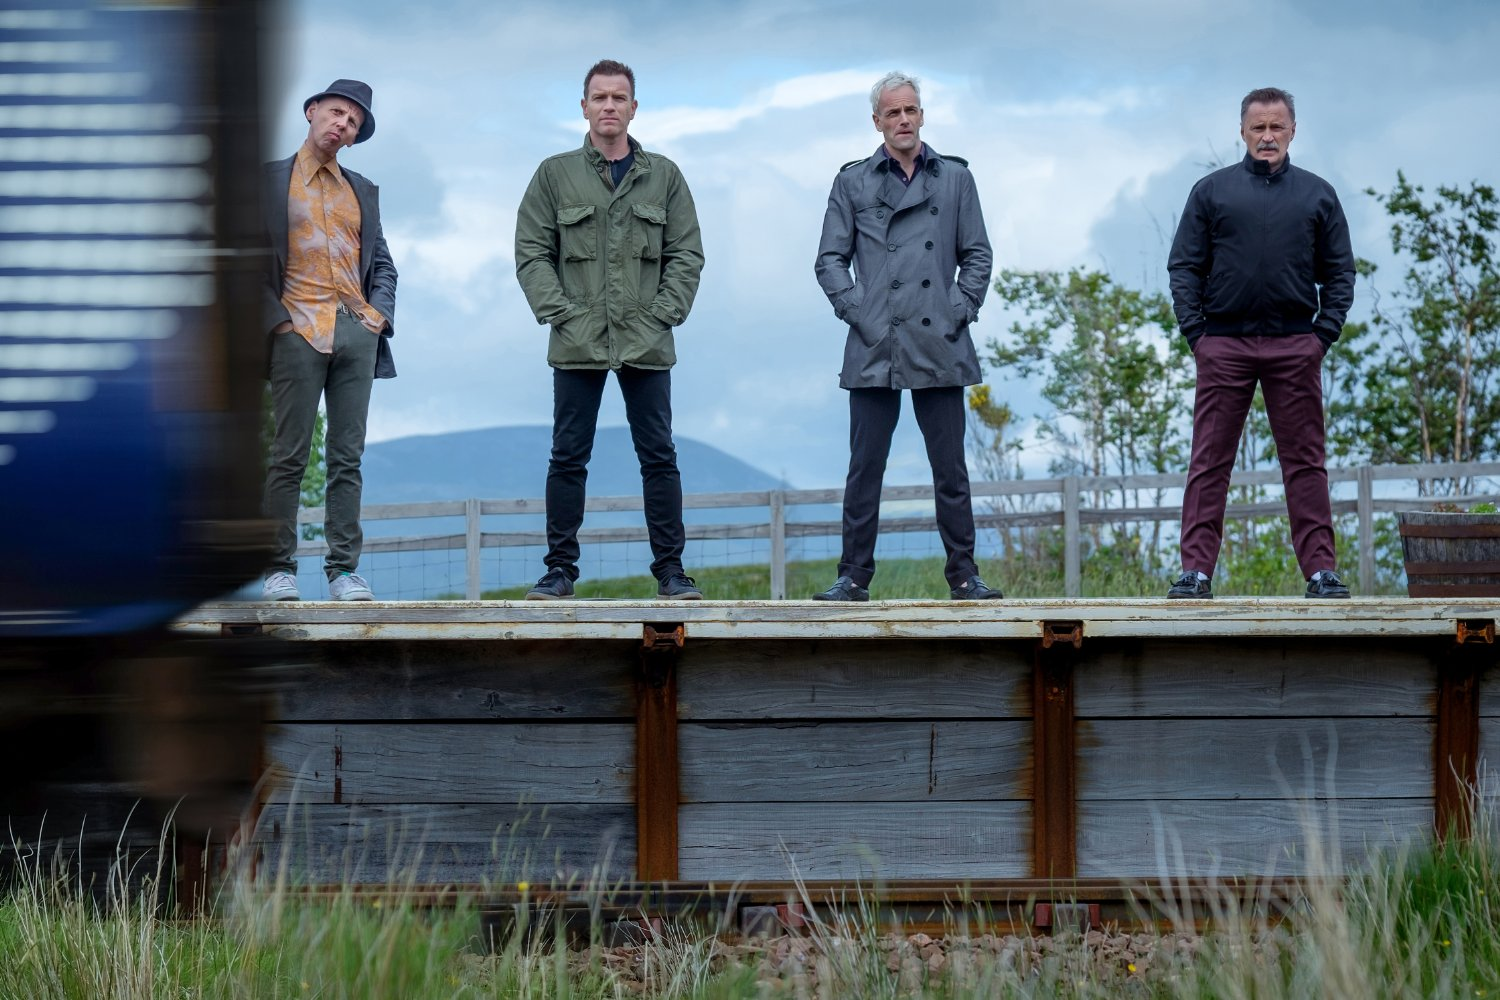 t2-trainspotting-03novembro2016-0